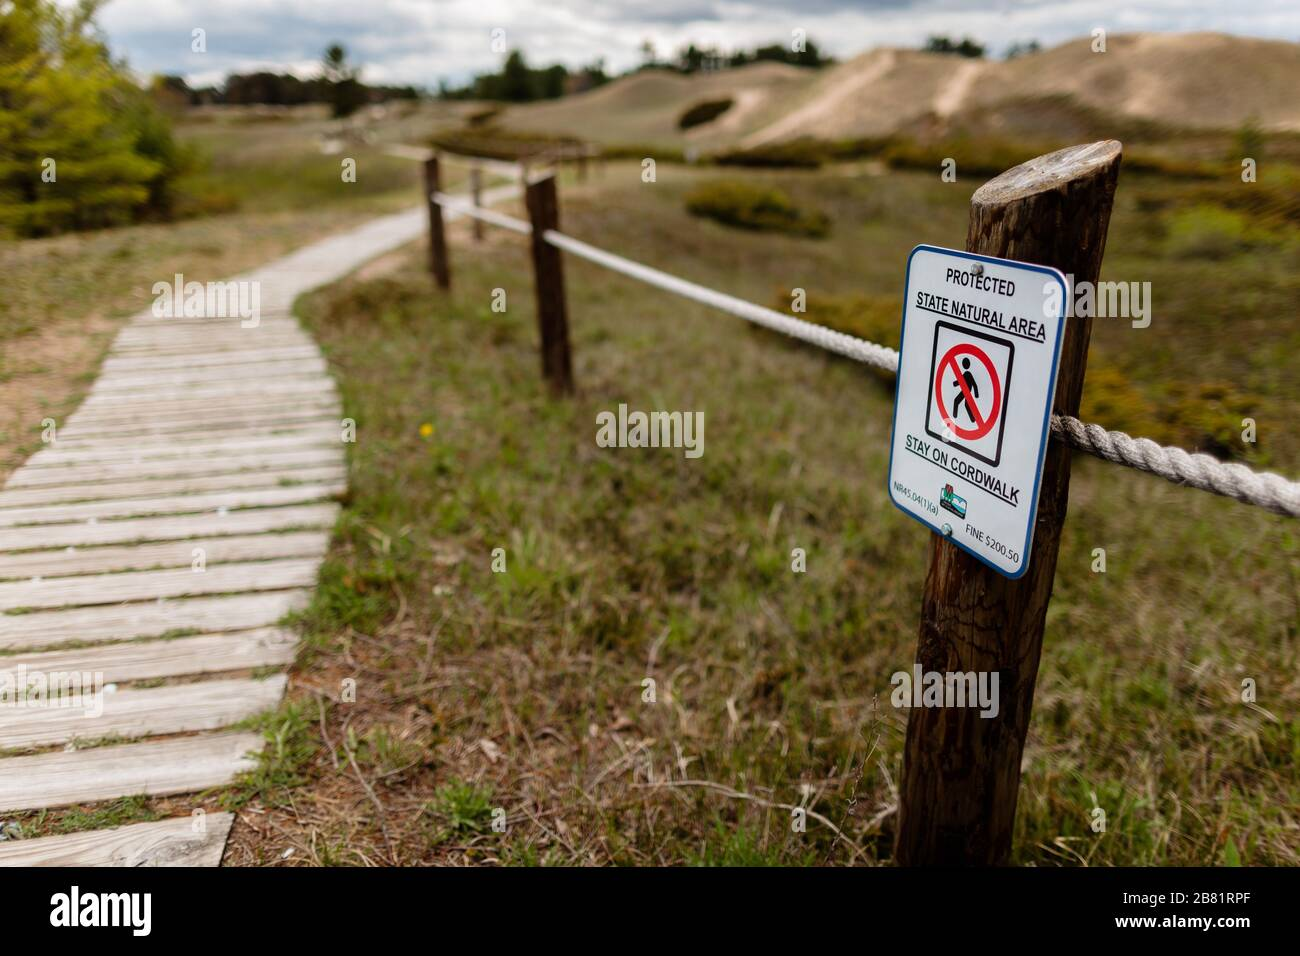 """Protecting the sand dunes at Kohler-Andrae State Park, Sheboygan, Wisconsin, with the roped-off area and the sign """"Protected State Natural Area,  Stay Stock Photo"""